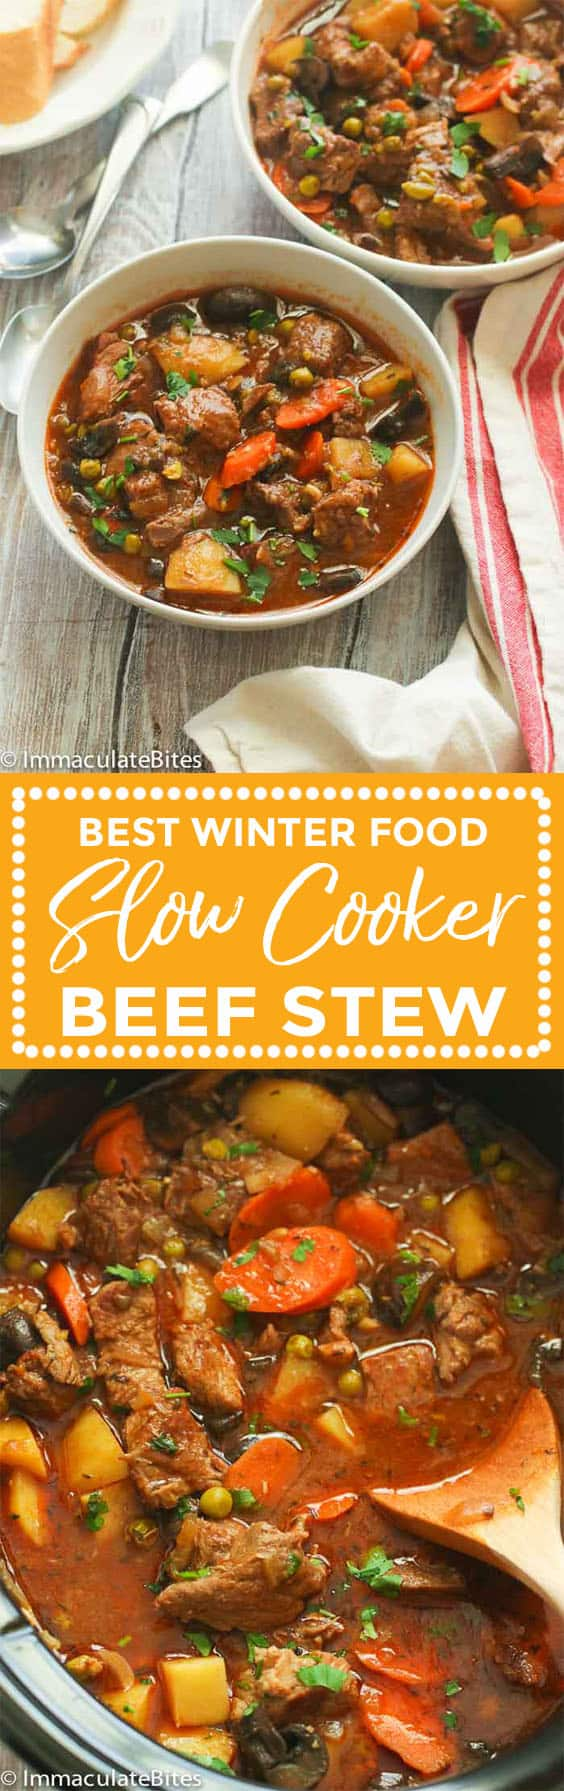 Slow Cooker Beef Stew Immaculate Bites